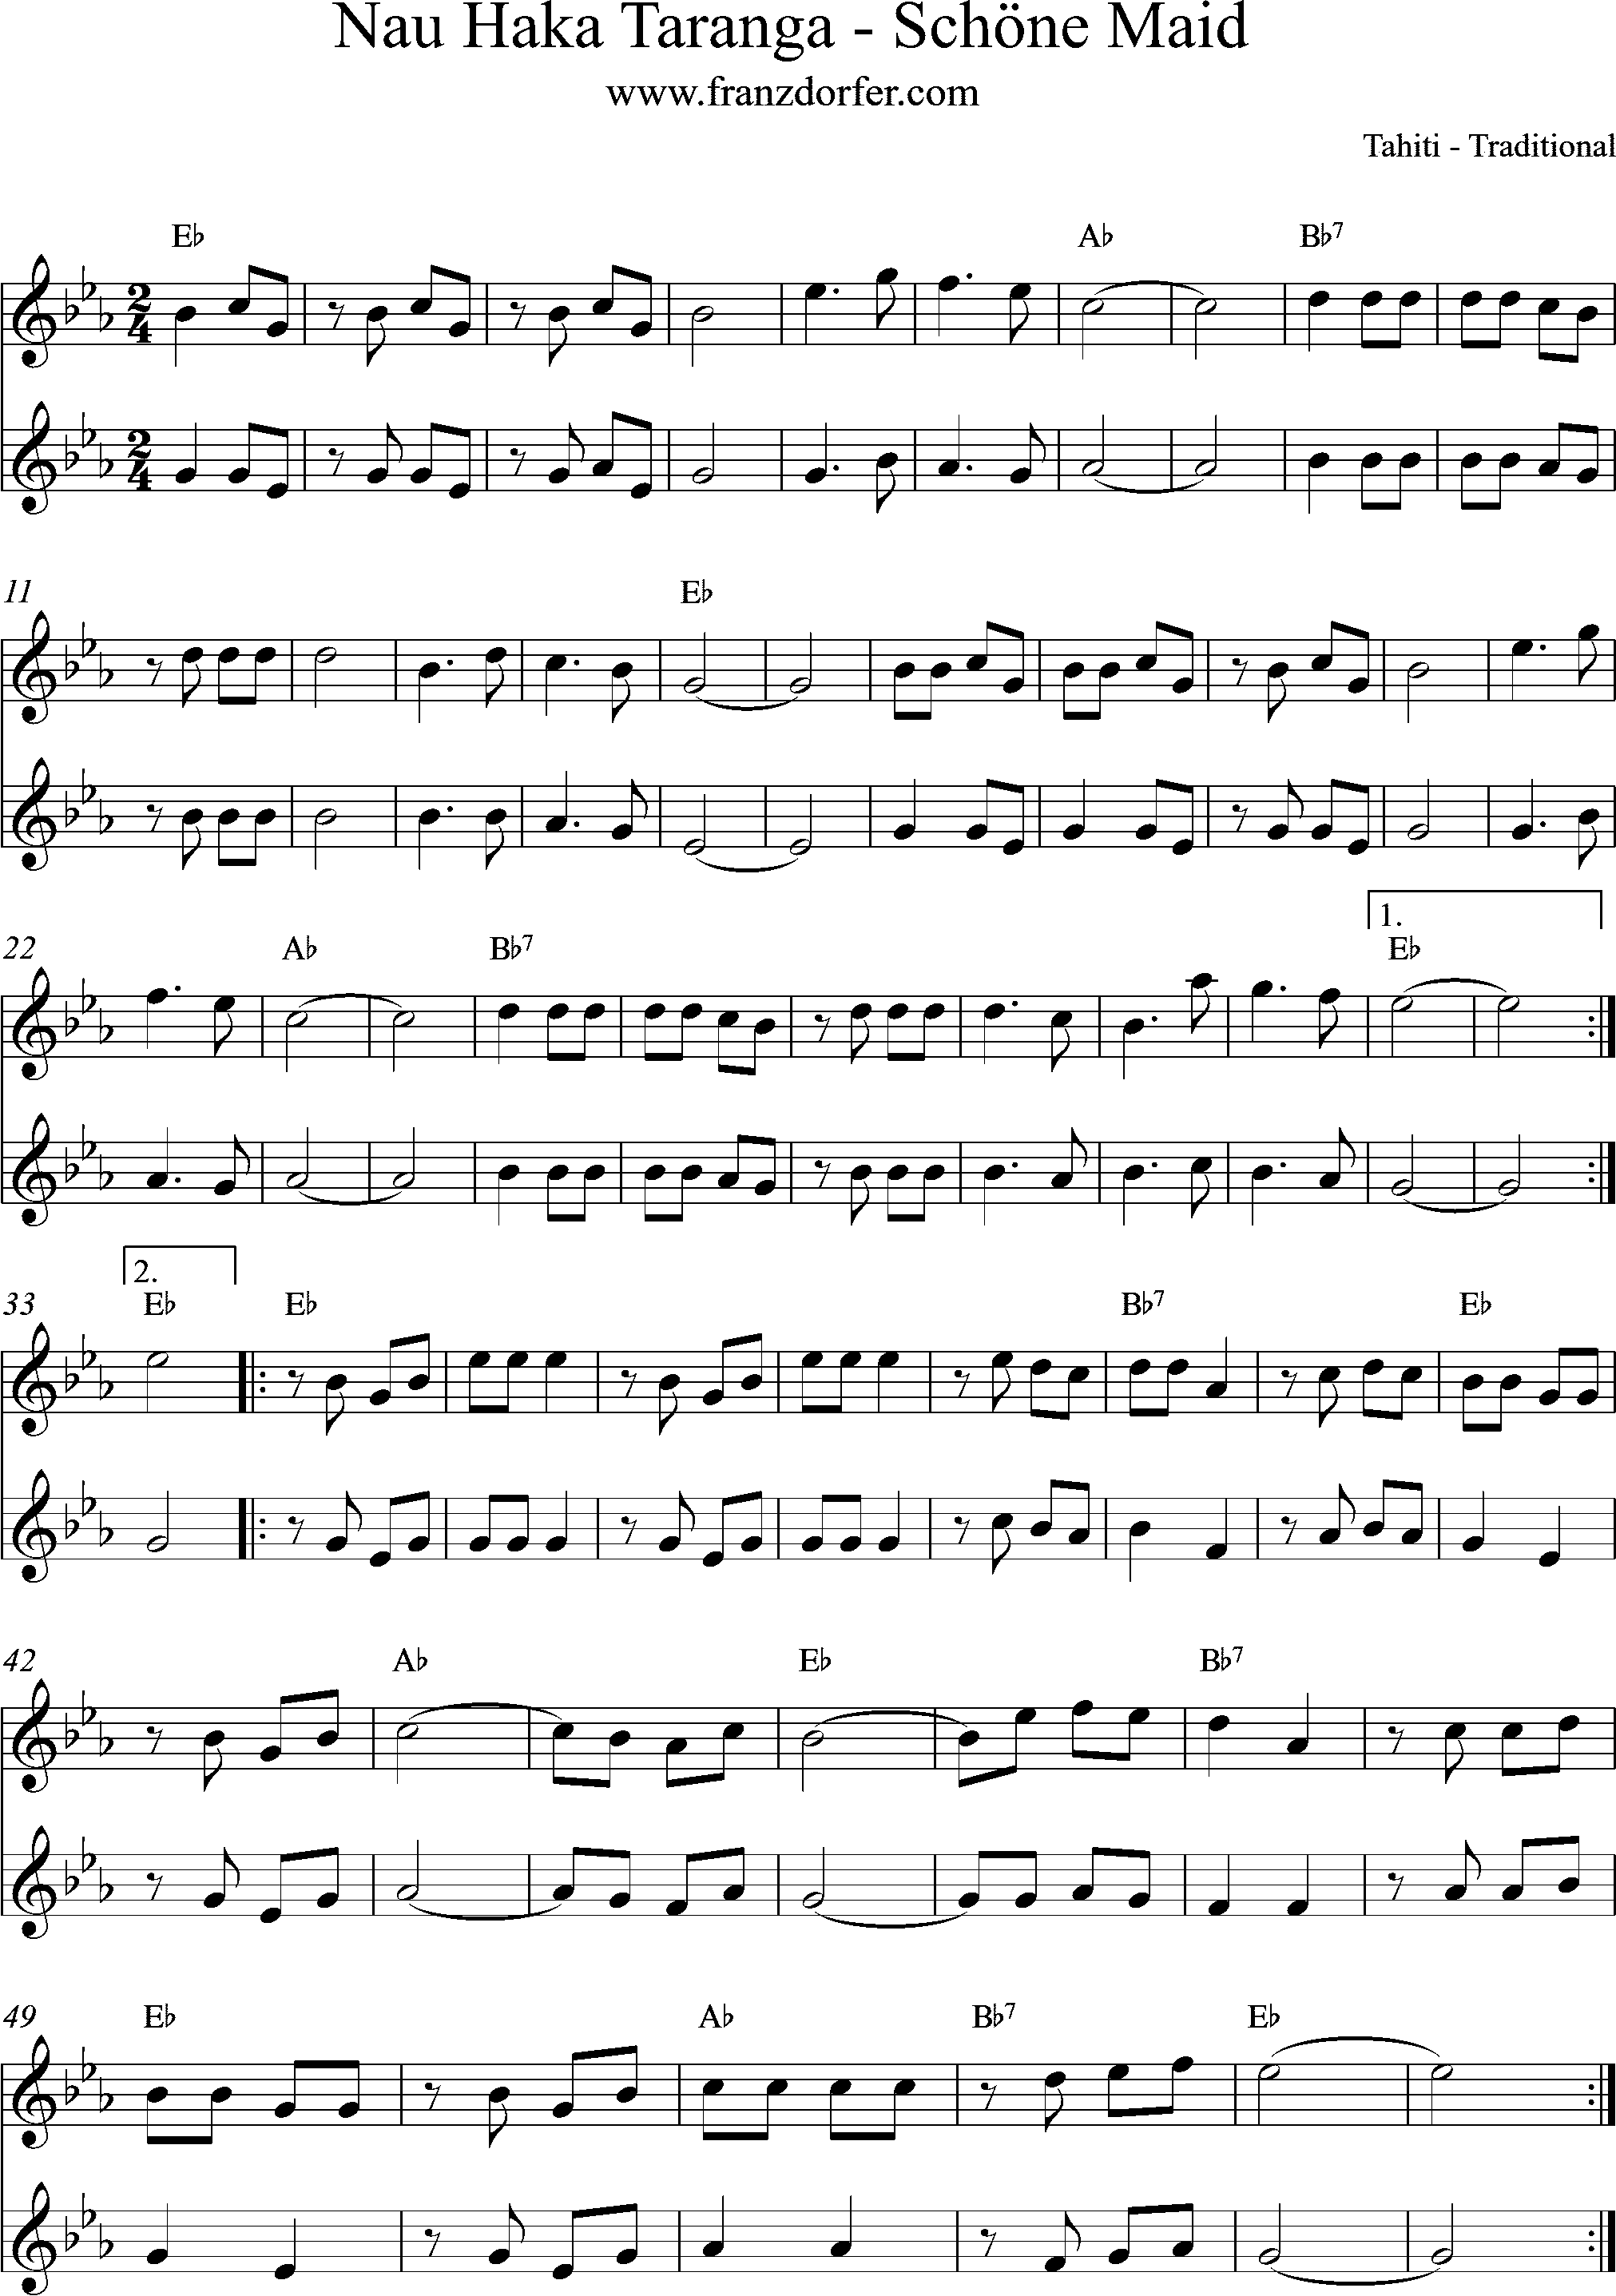 Sheetmusic, Noten, Schöne Maid